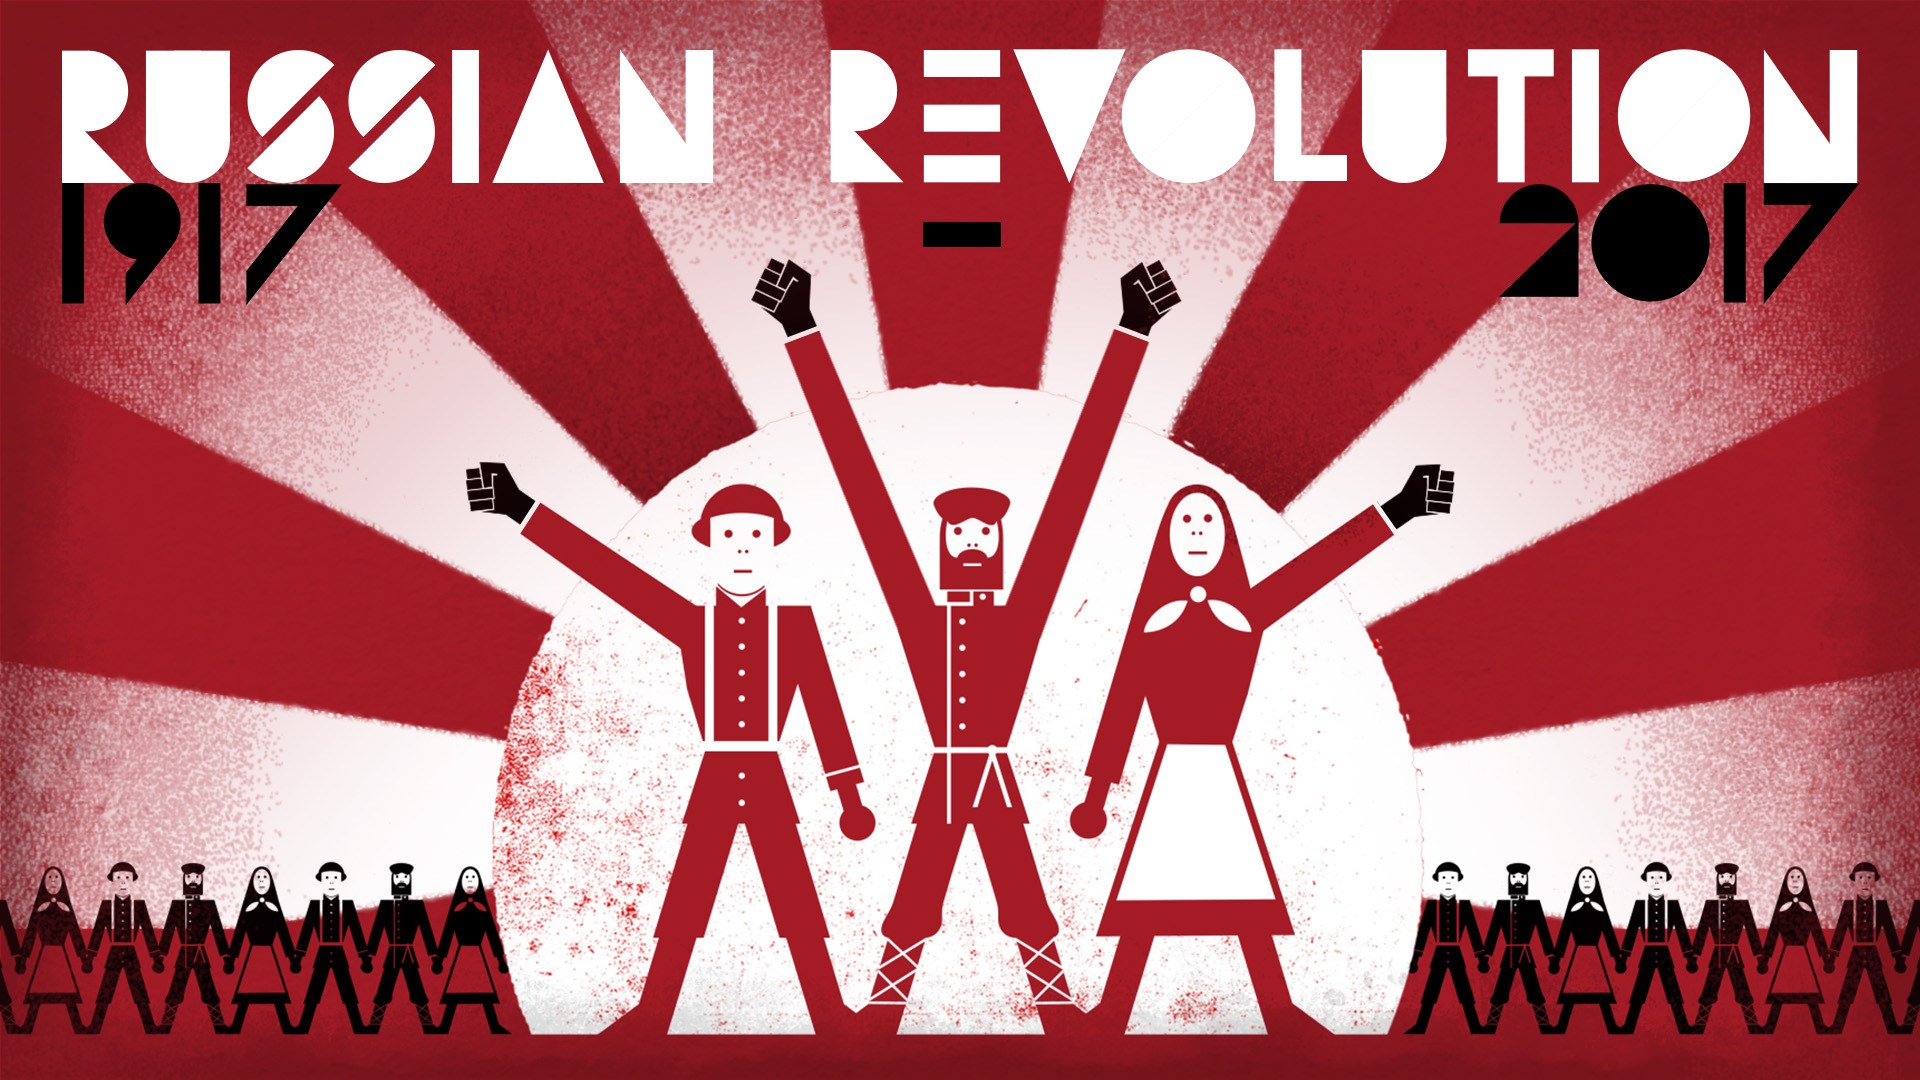 100 Years of Russian Revolution – I: Is Communism Compatible with Democracy?